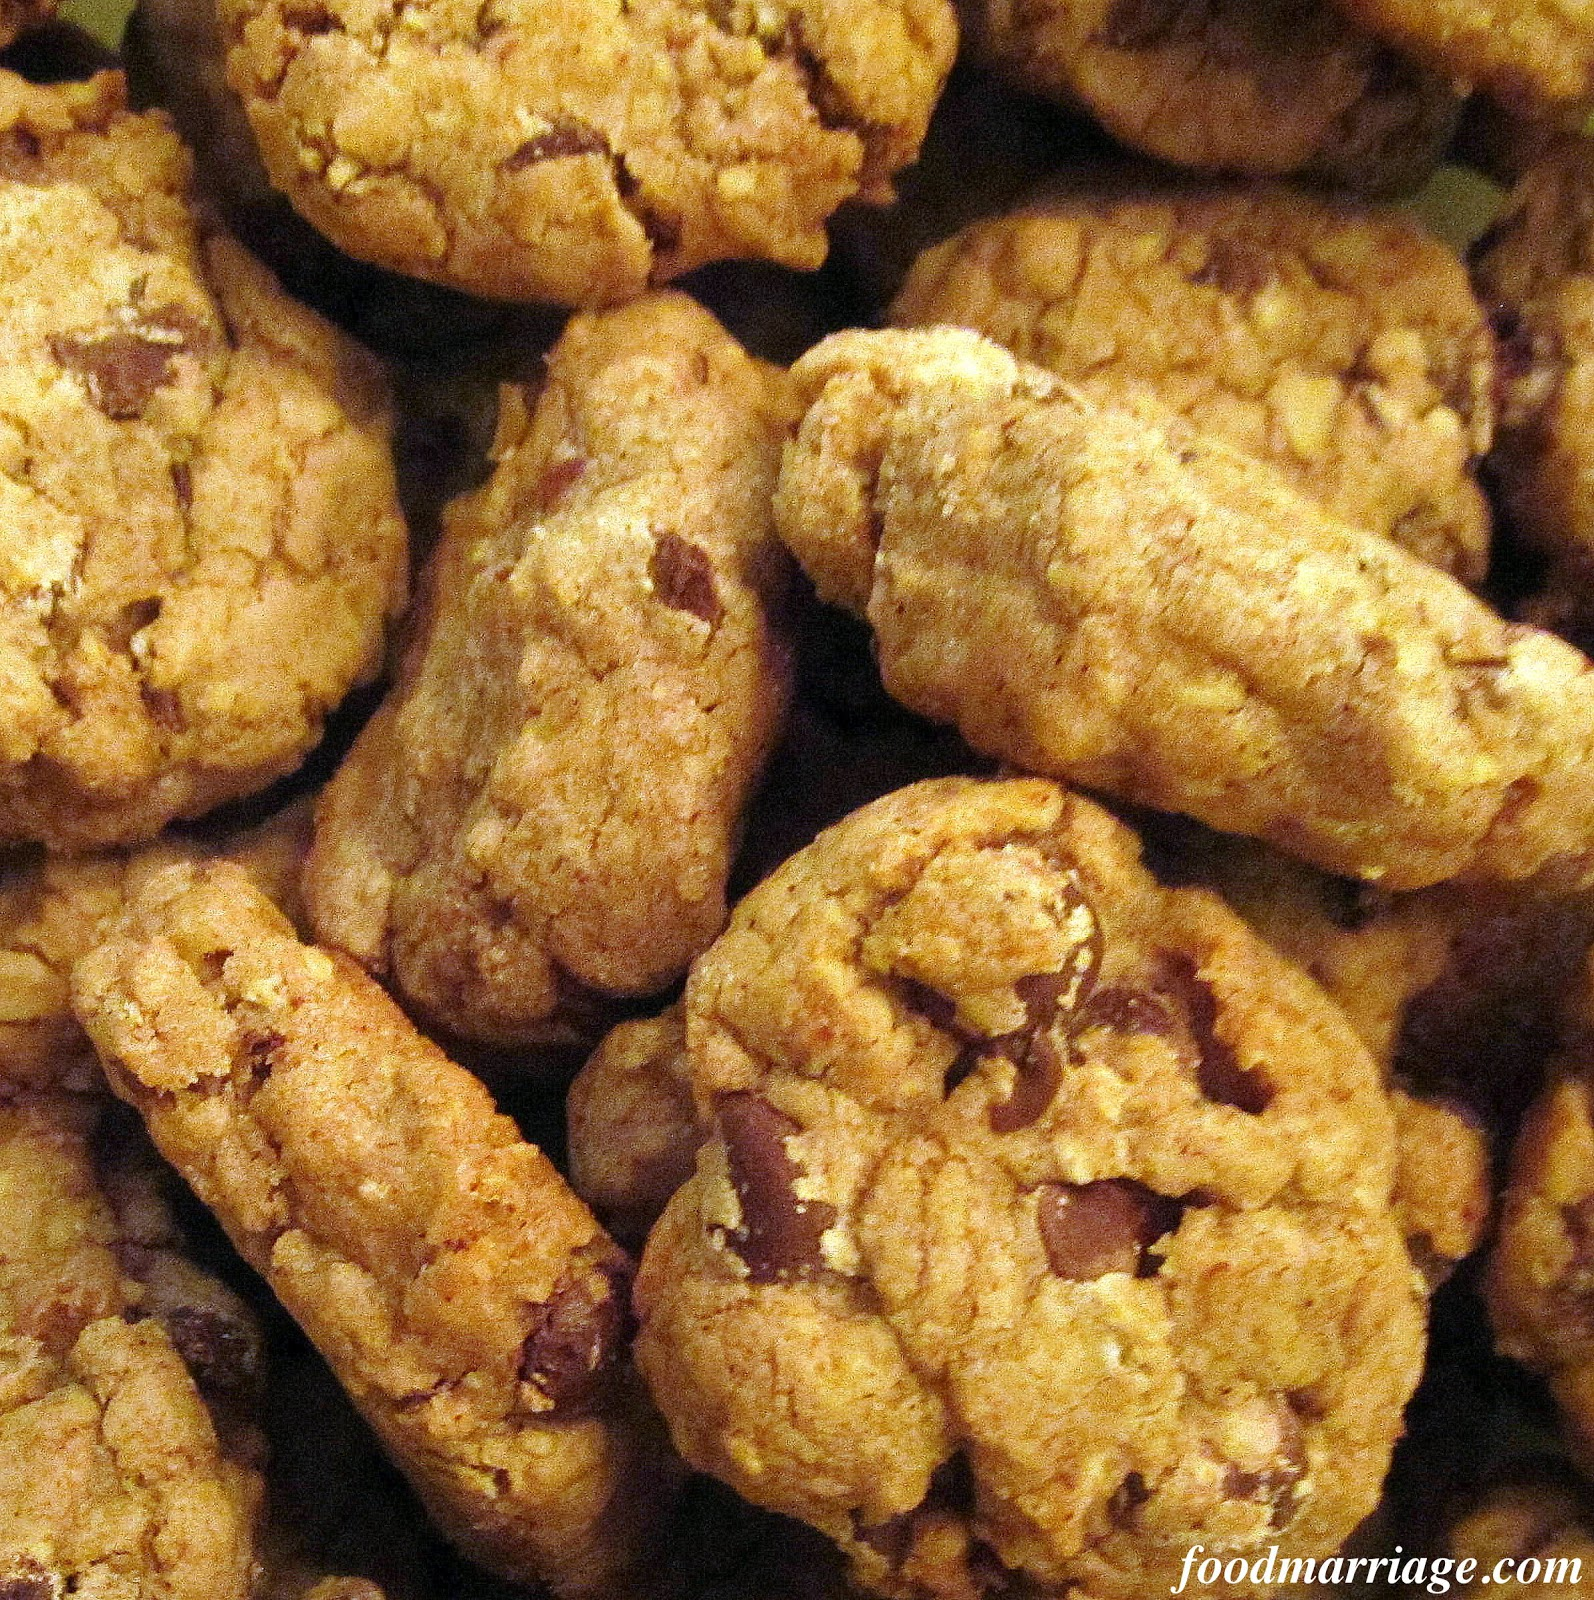 Brown Butter Oatmeal Chocolate Chip Cookies Recipes — Dishmaps